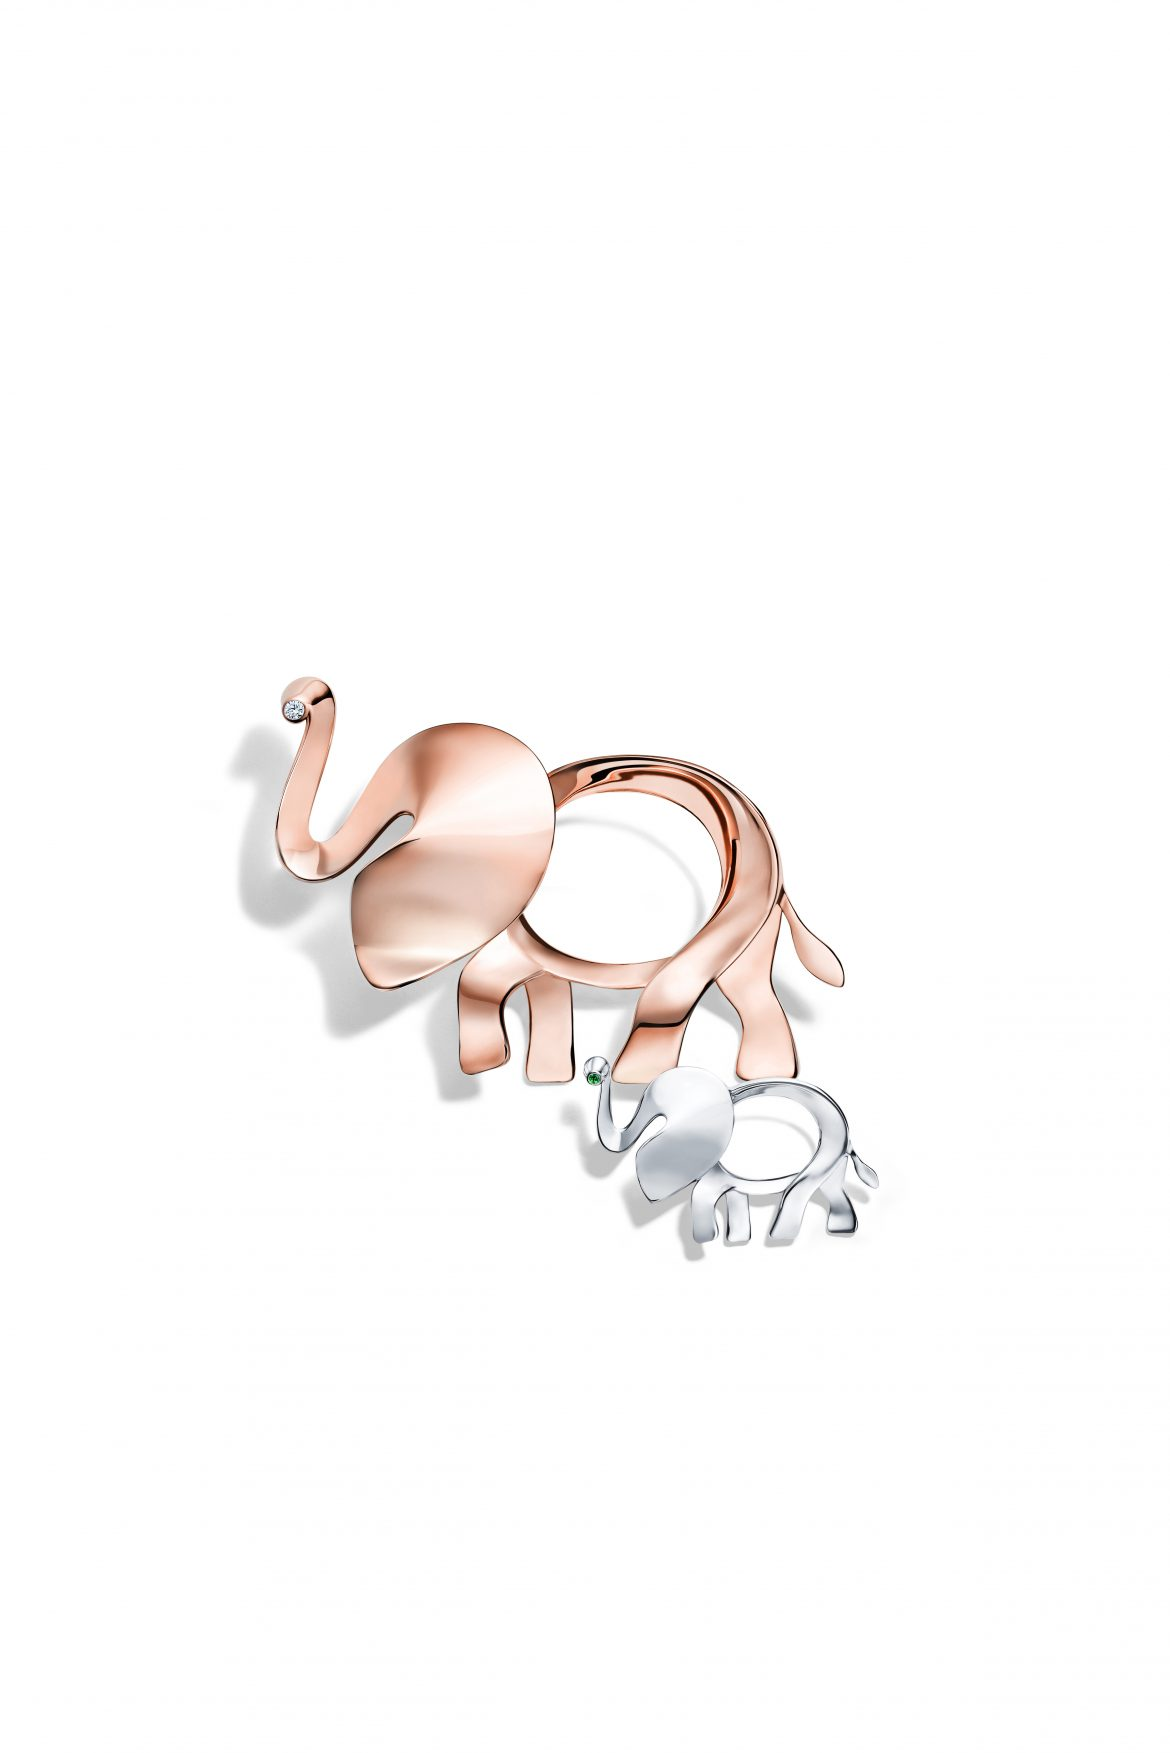 tiffany-save-the-wild-2017_60881723_rose-goldsilver-brooch